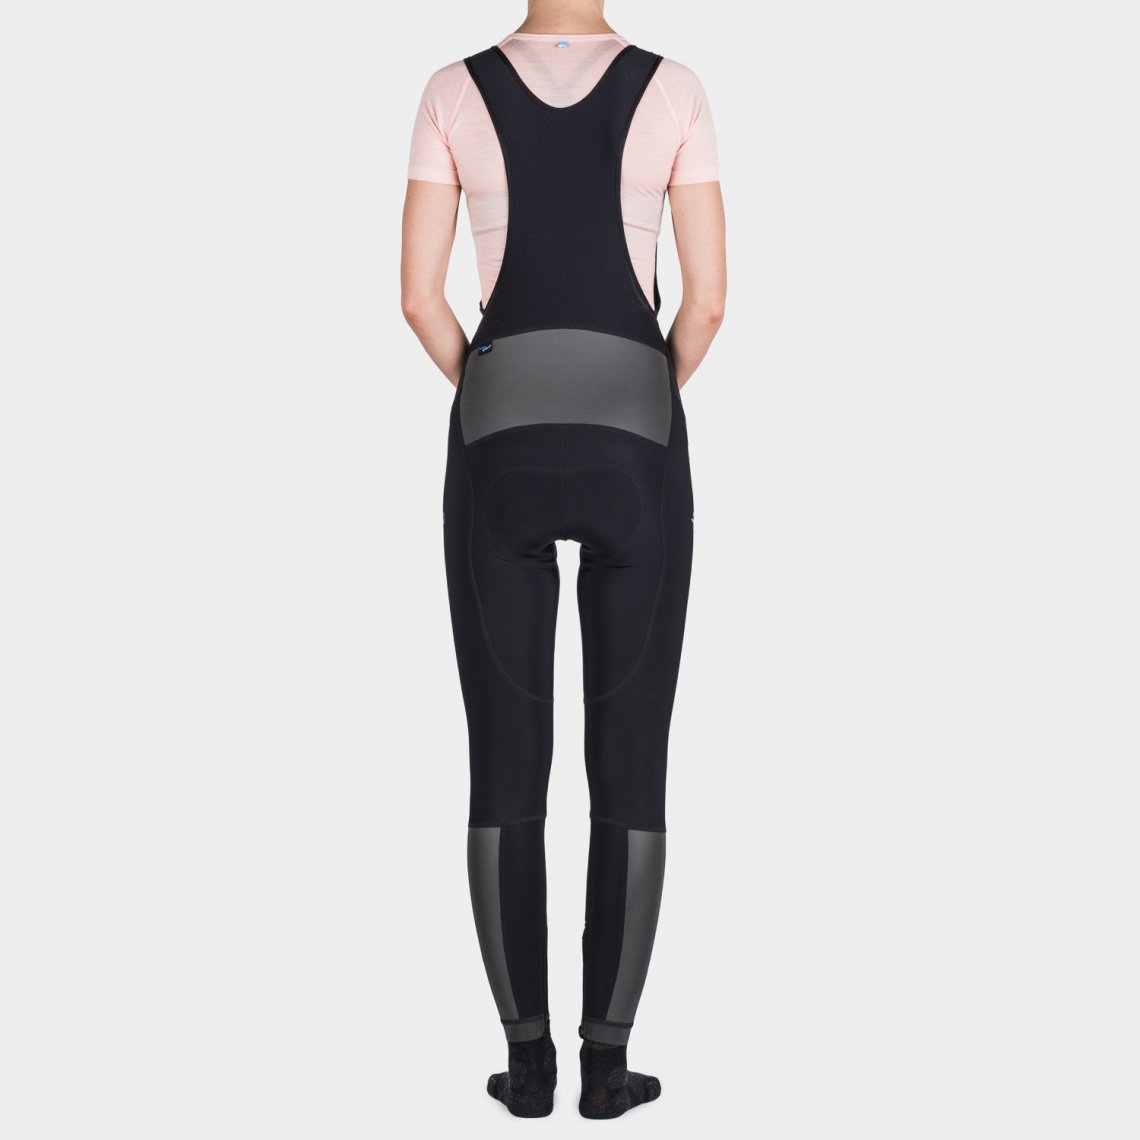 Isadore Women's Medio ThermoRoubaix Tights Bib Tights Isadore